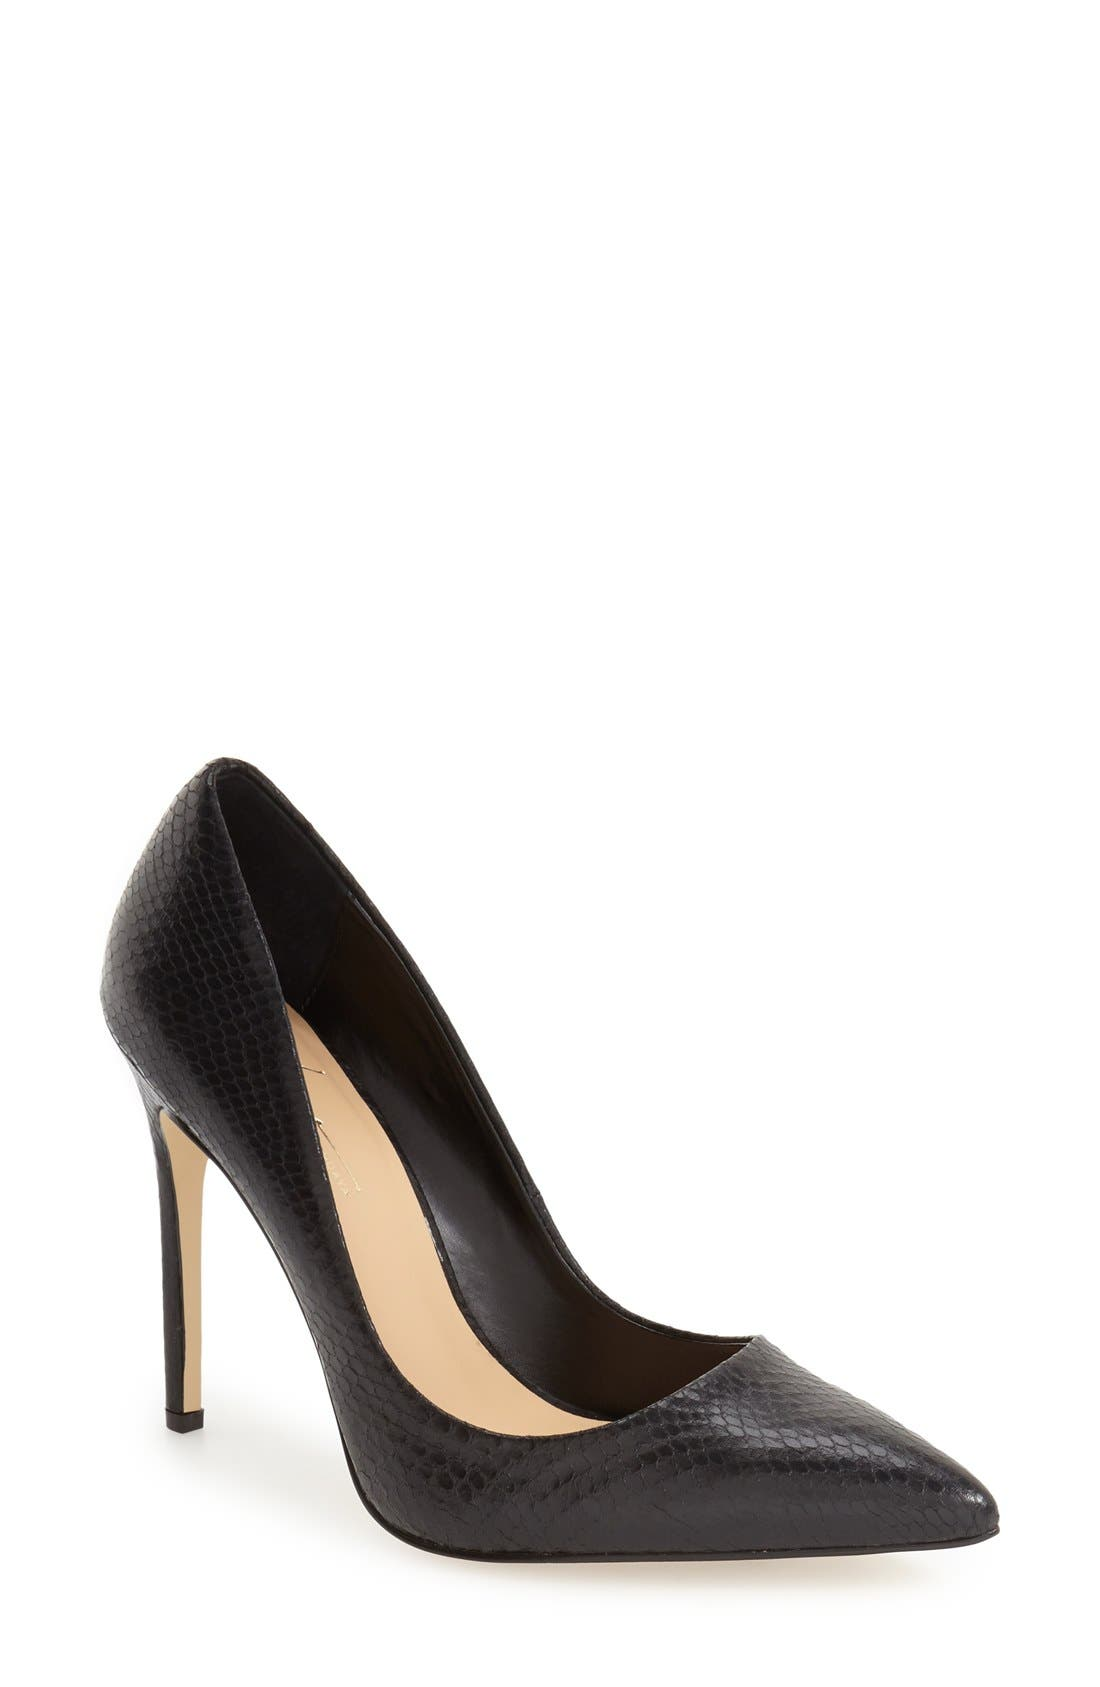 Main Image - Daya by Zendaya 'Atmore' Pump (Women)